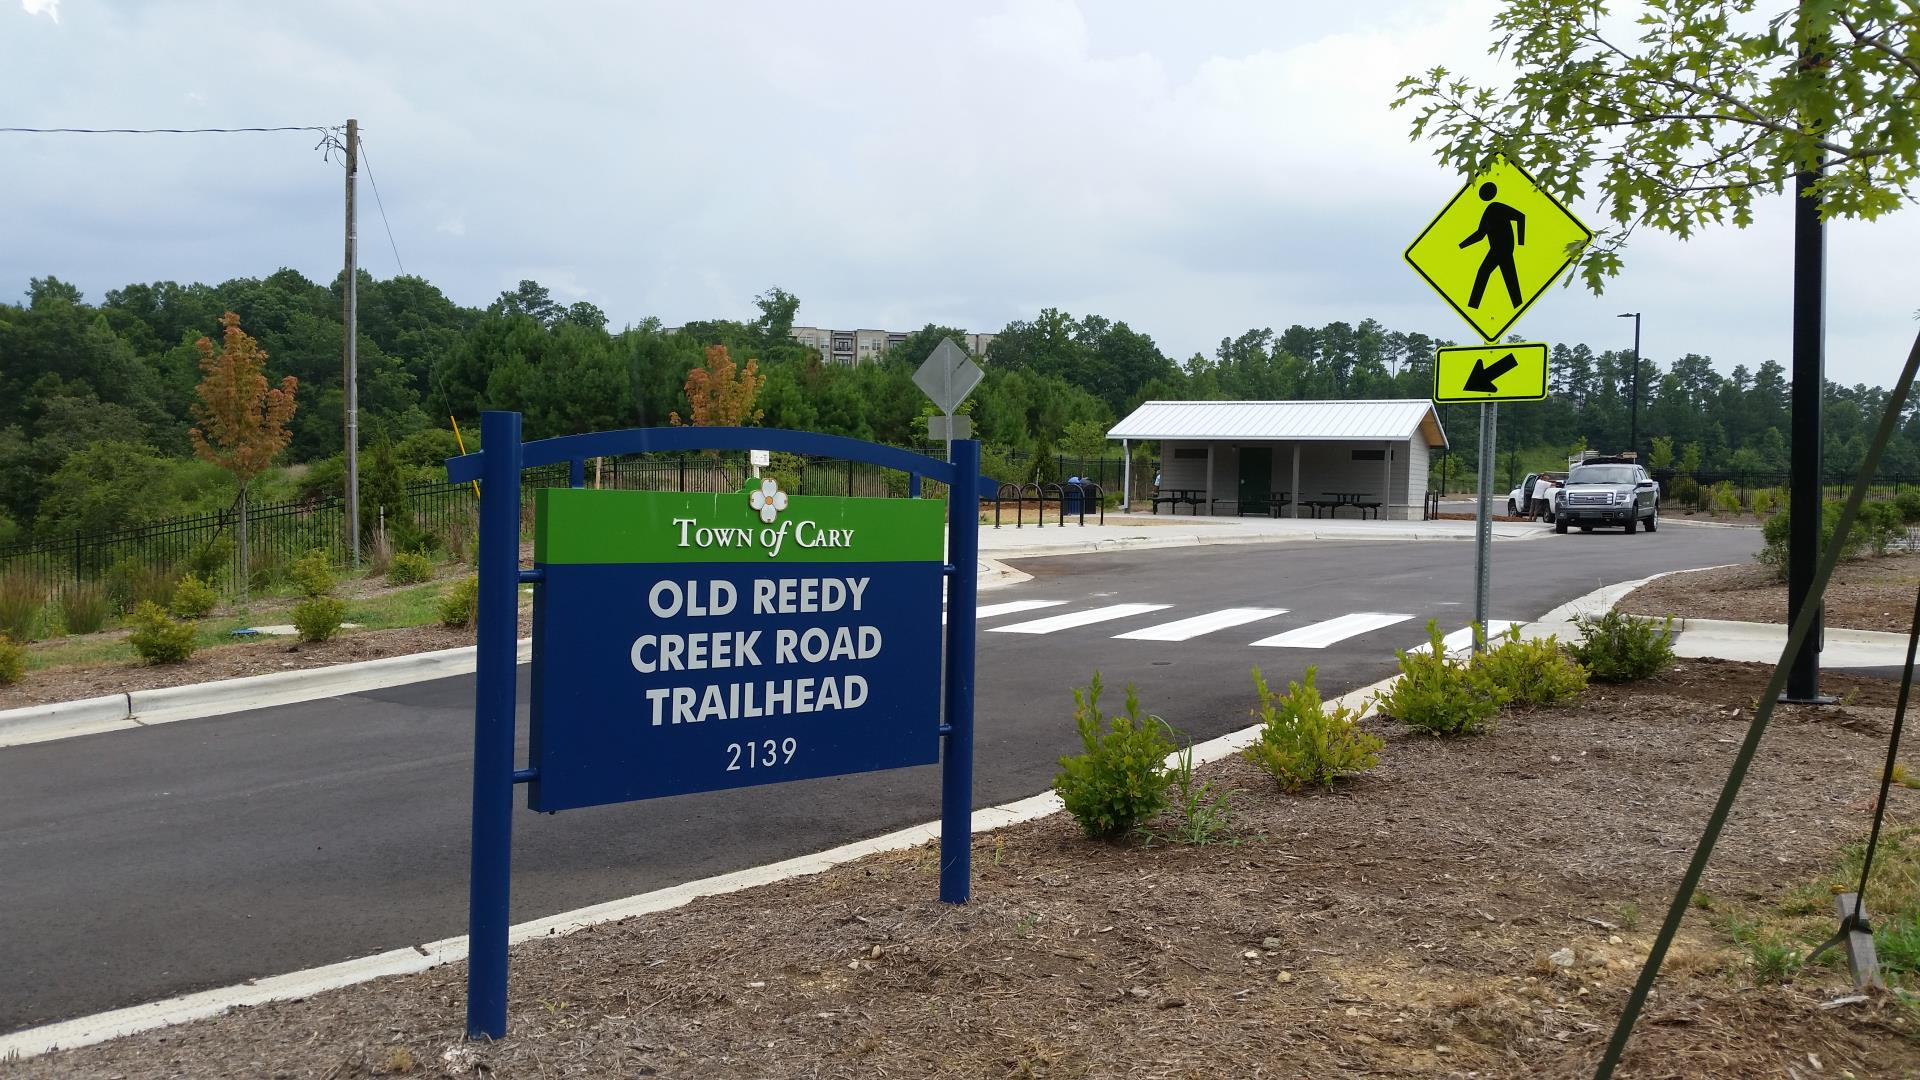 Old Reedy Creek Road Trailhead